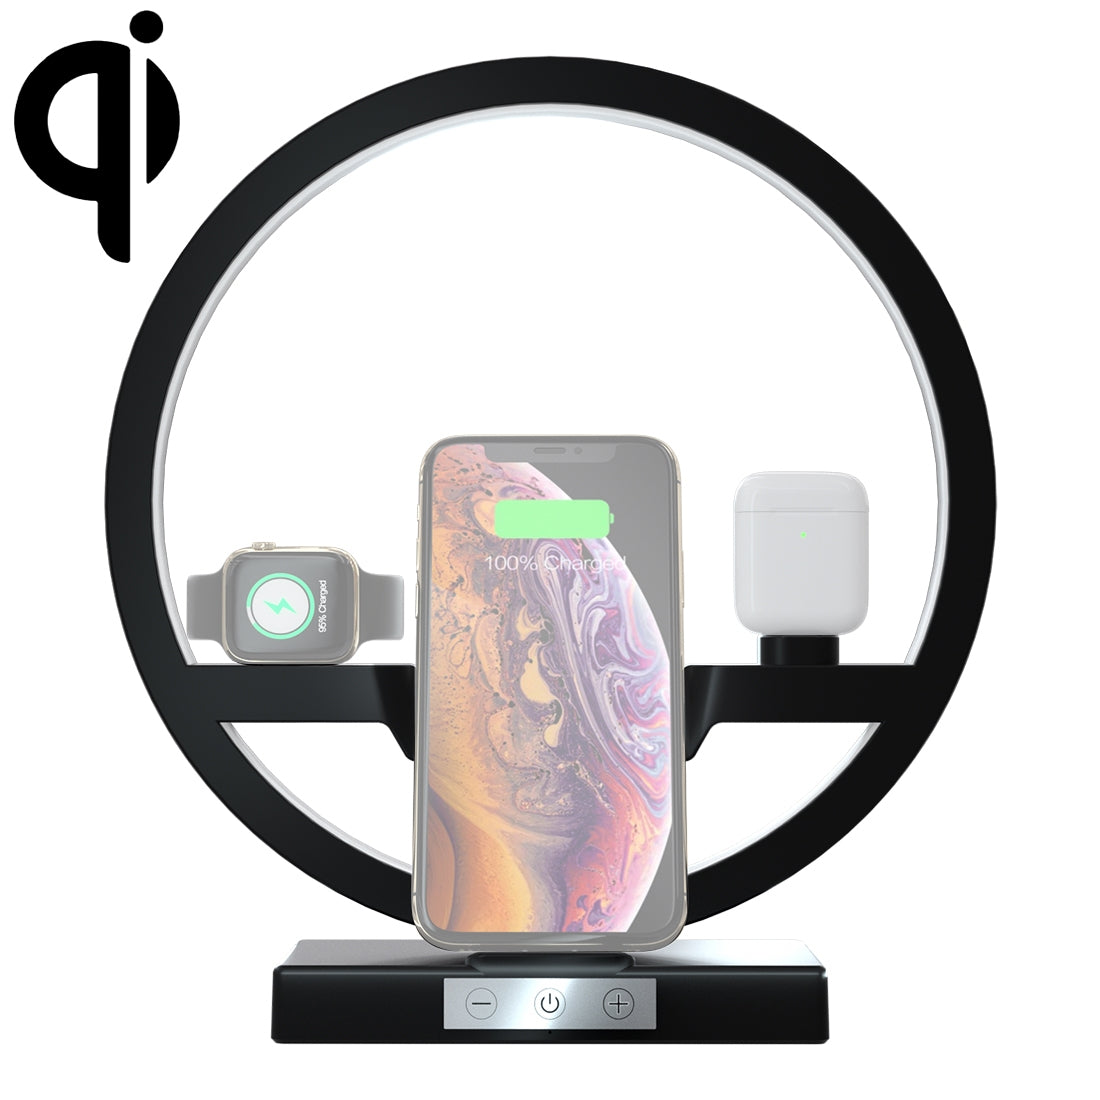 N38 QI Vertical Fast Wireless Charger for Mobile Phones & Apple Watch & AirPods, with LED Light (Black)